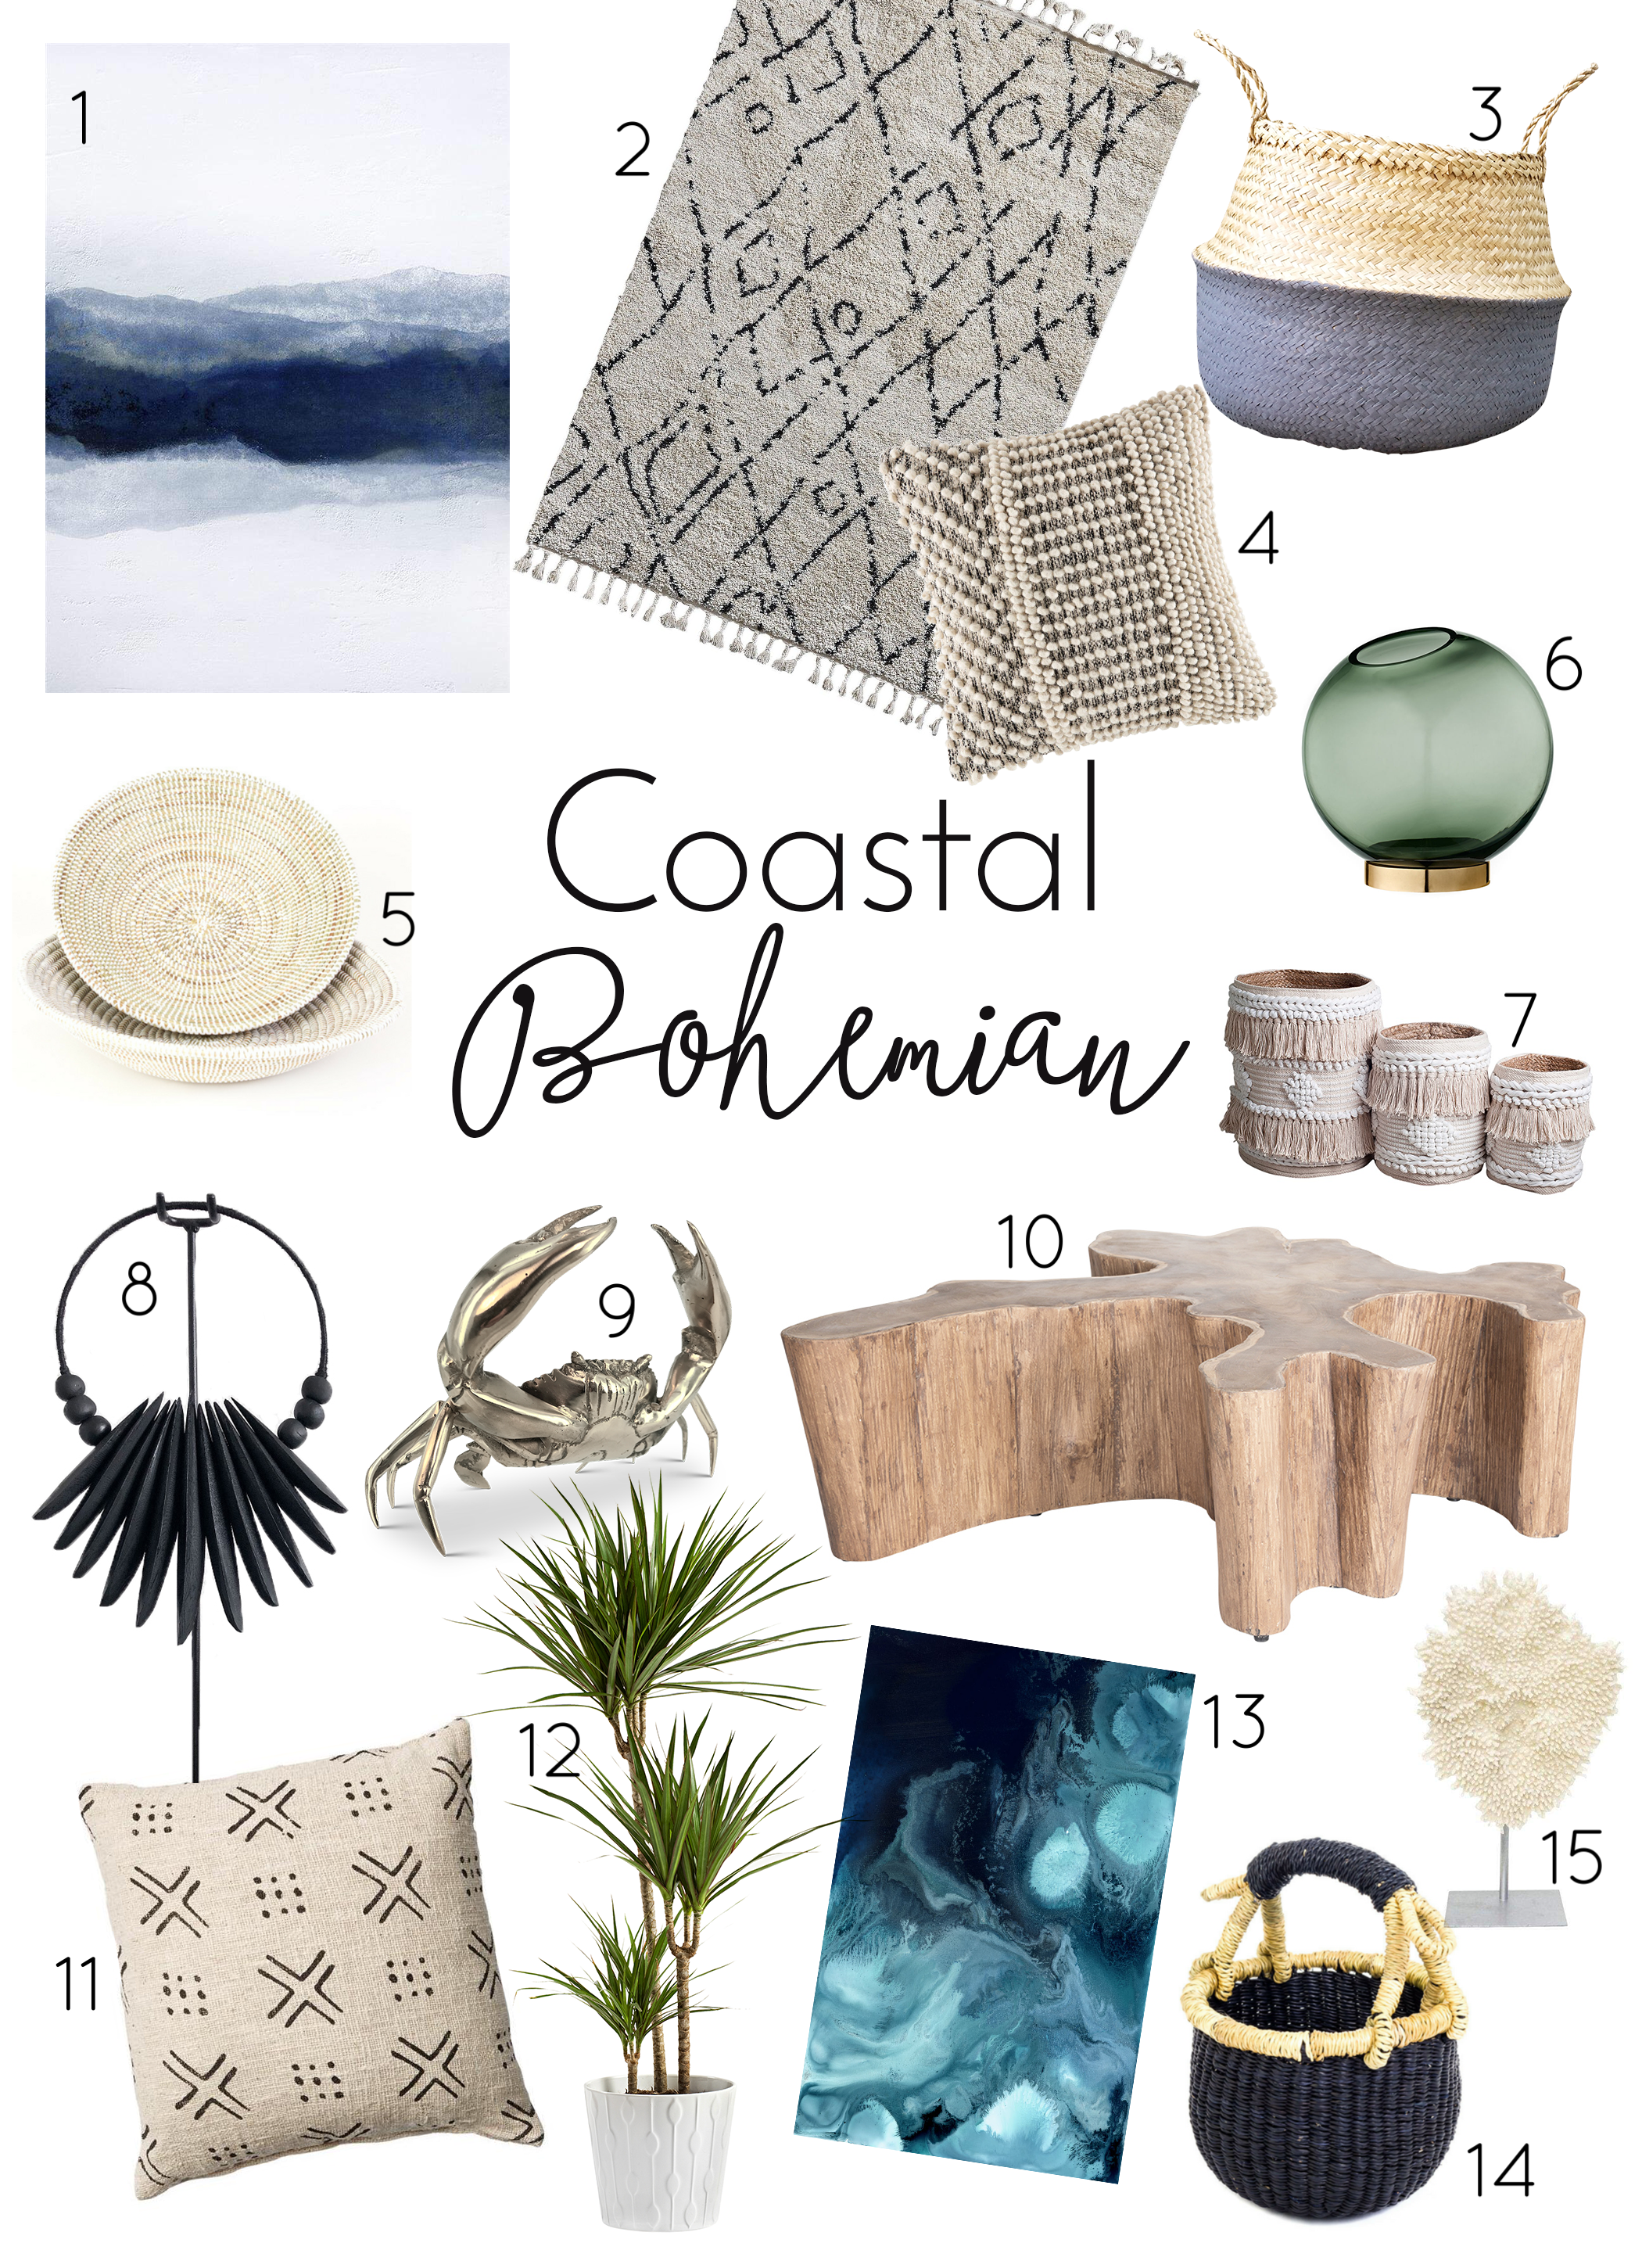 Think of… - whites, natural, cane furniture, bamboo, shells, blues and soft greens, the beach, tropical plants